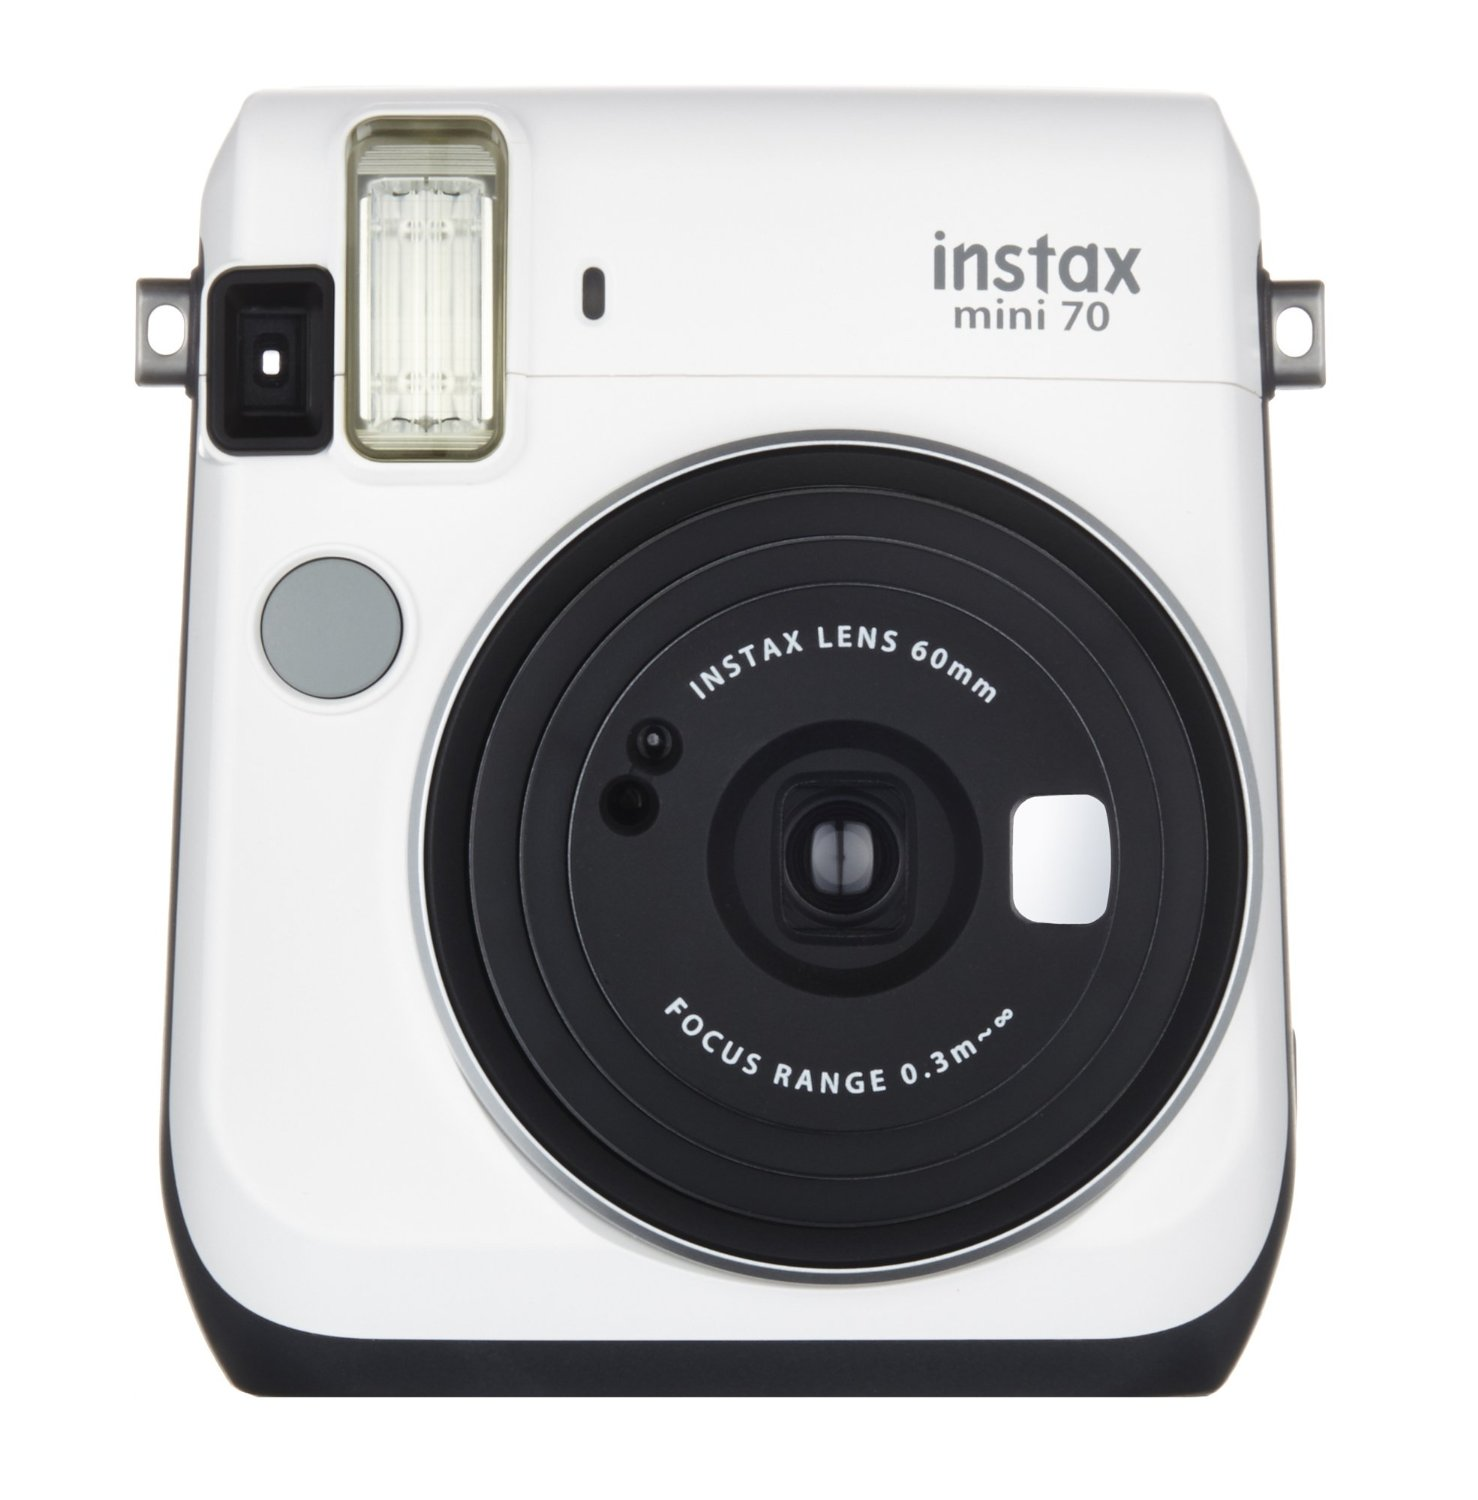 Fujifilm Instax Mini 70 - Instant Film Camera...so much fun for weddings and family functions! | https://www.roseclearfield.com